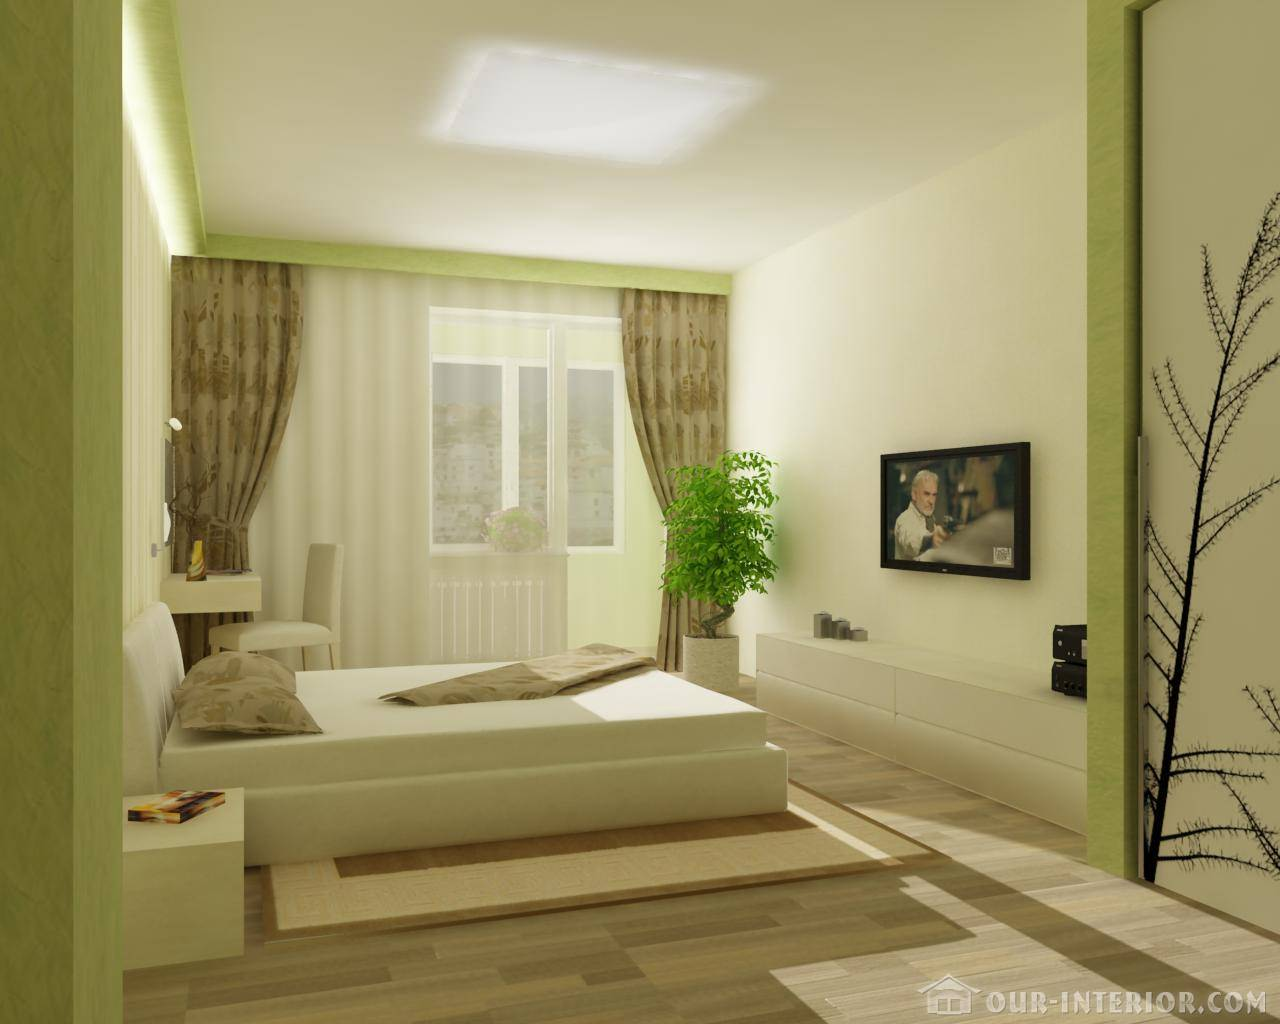 Our for Bedroom interior designs gallery